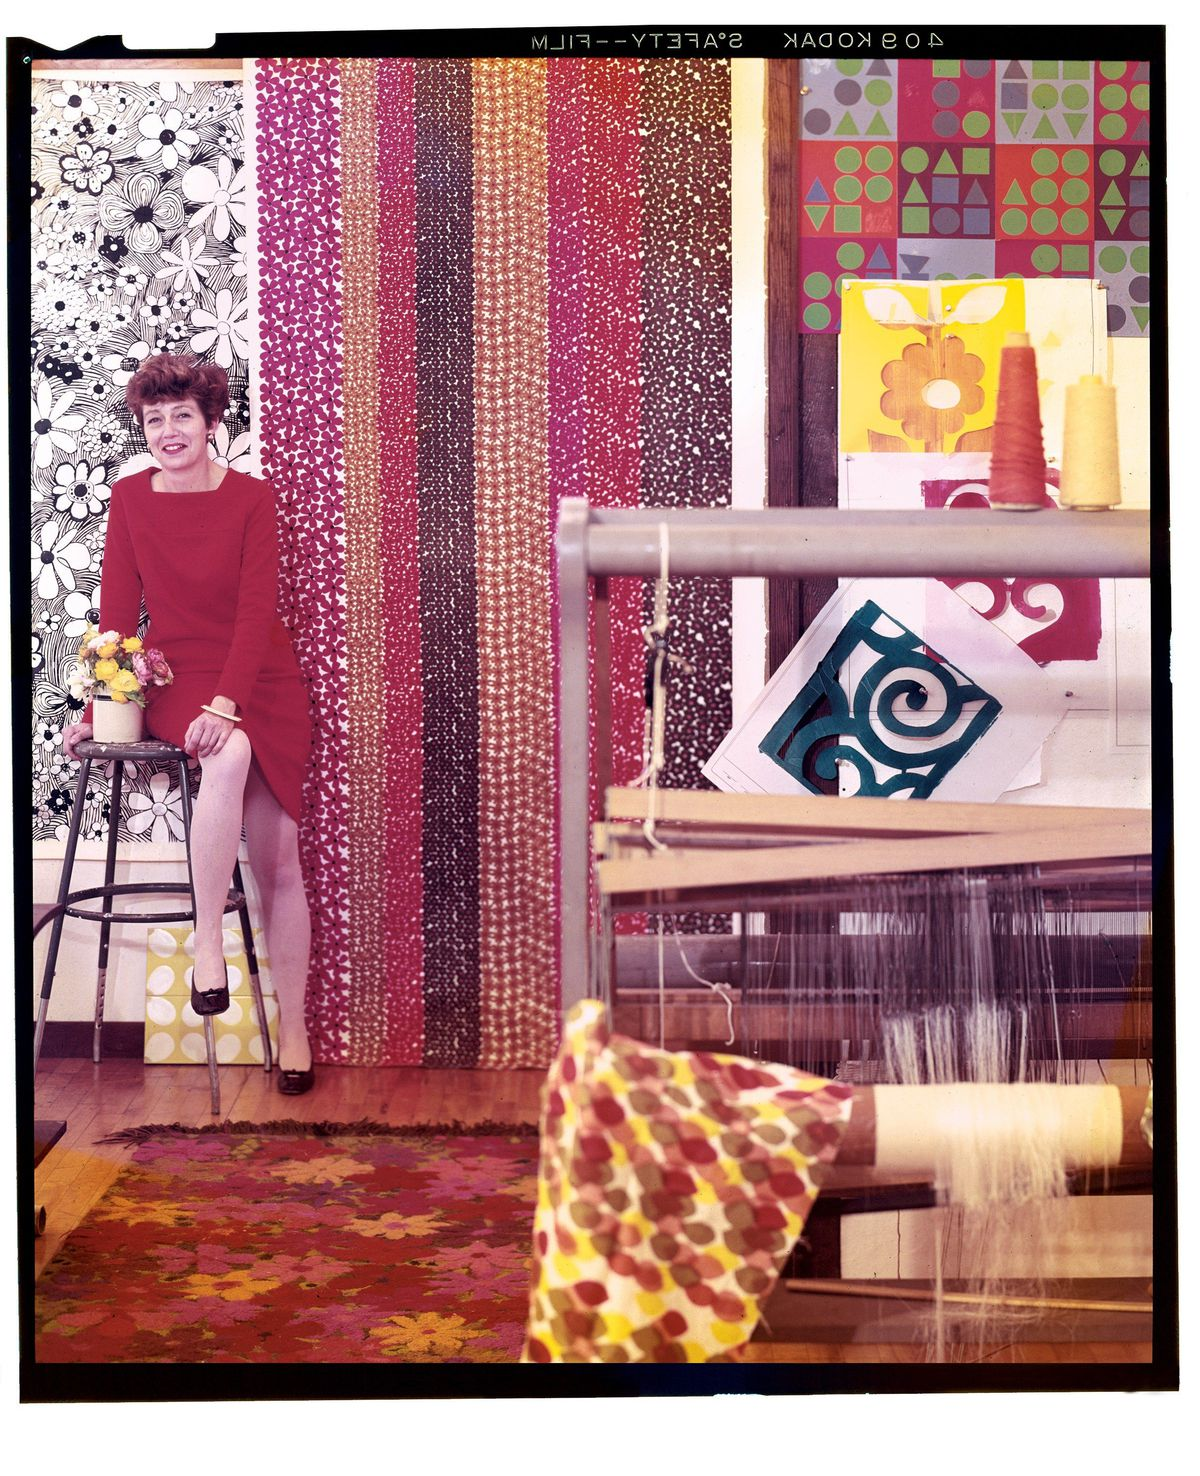 A woman in a red dress sits on a stool in a room heaped with fabrics, rugs and textiles, all in brightly colored, bold patterns.